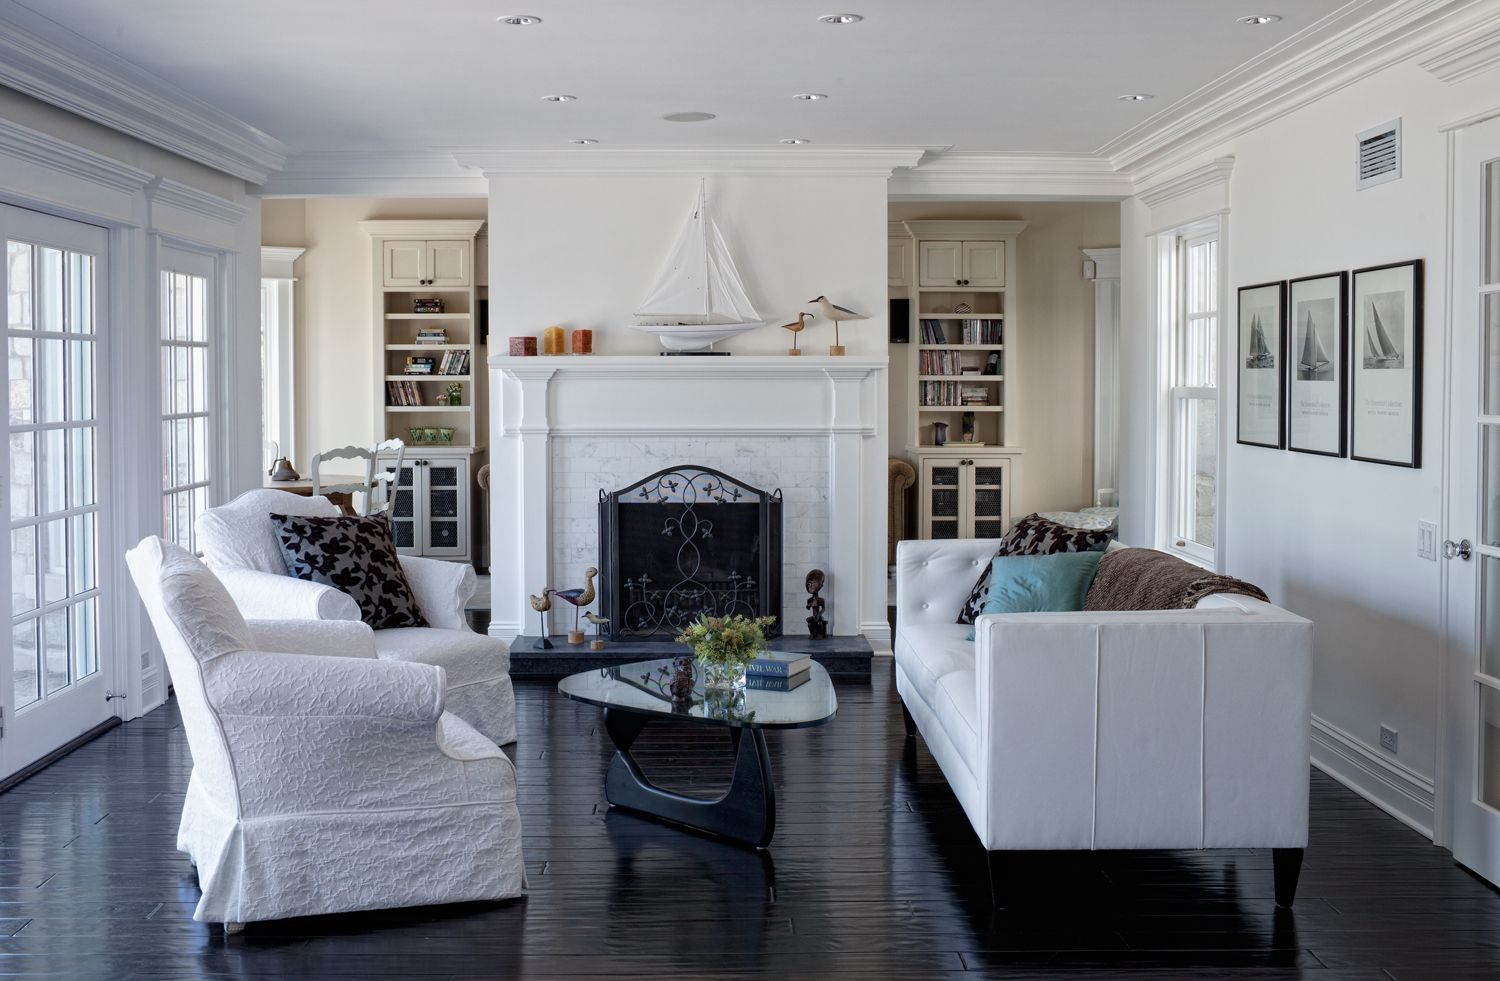 Nautical Living Room Design Crisp Nautical Living Room With Dark Wood Floors And White Walls